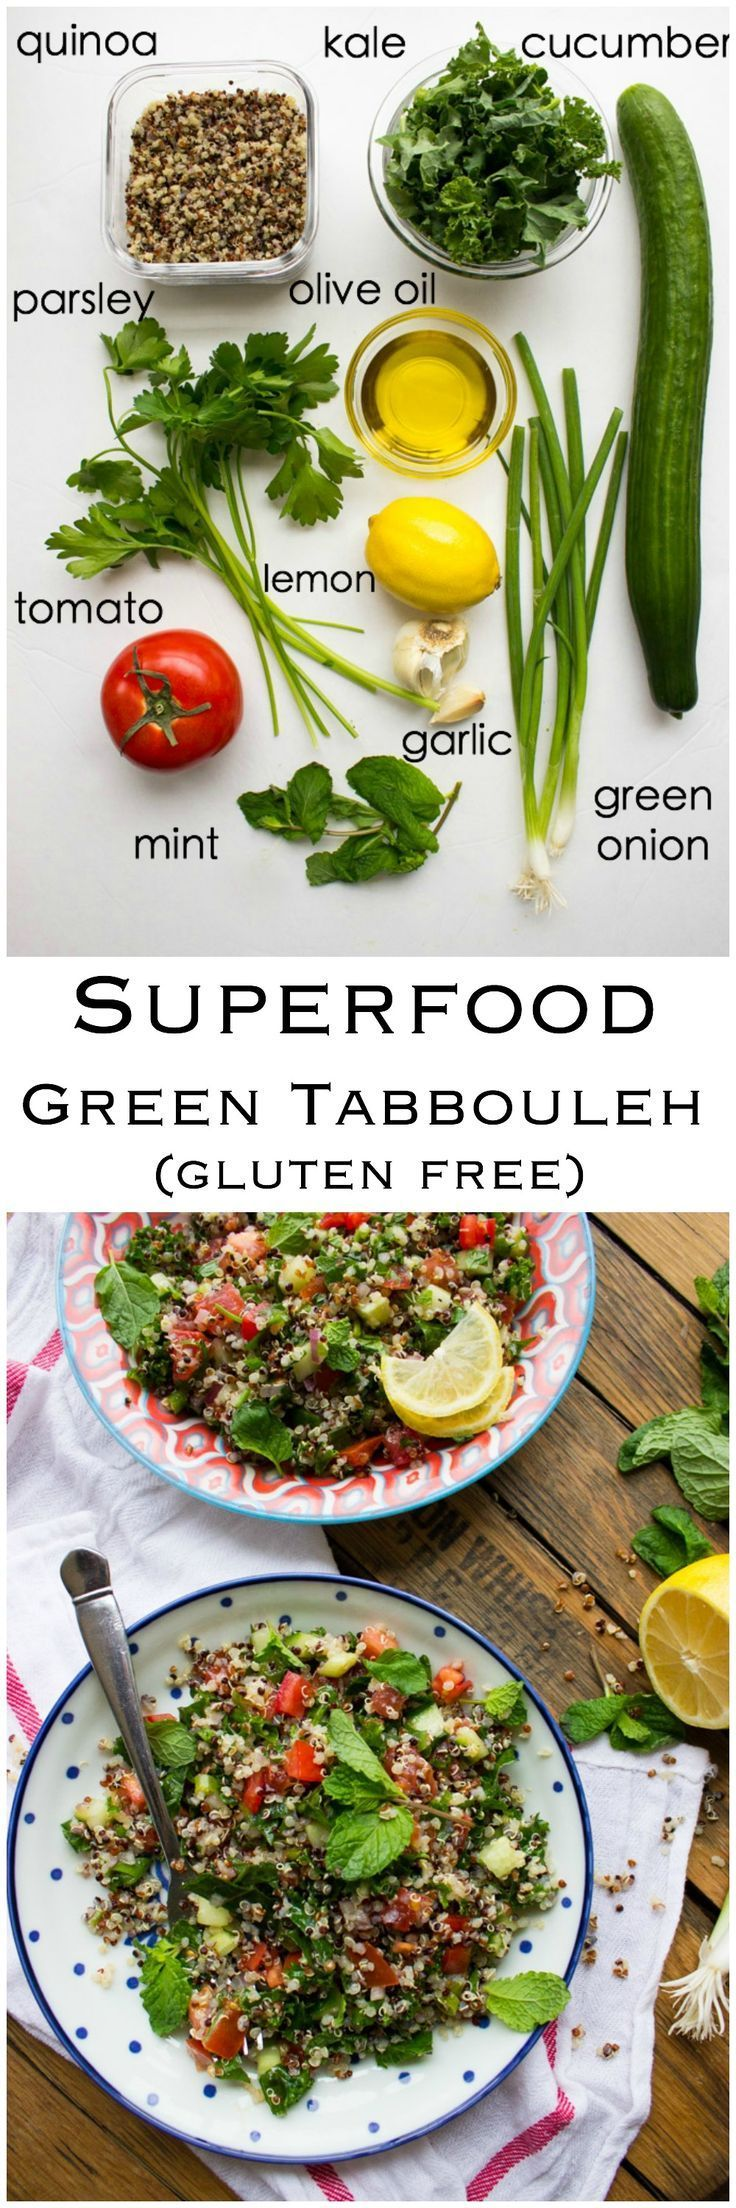 Superfood Green Tabbouleh - this gluten free salad made with superfood quinoa and kale. Takes minutes to make. Top it with chicken for healthy complete meal. SO GOOD!   littlebroken.com /littlebroken/